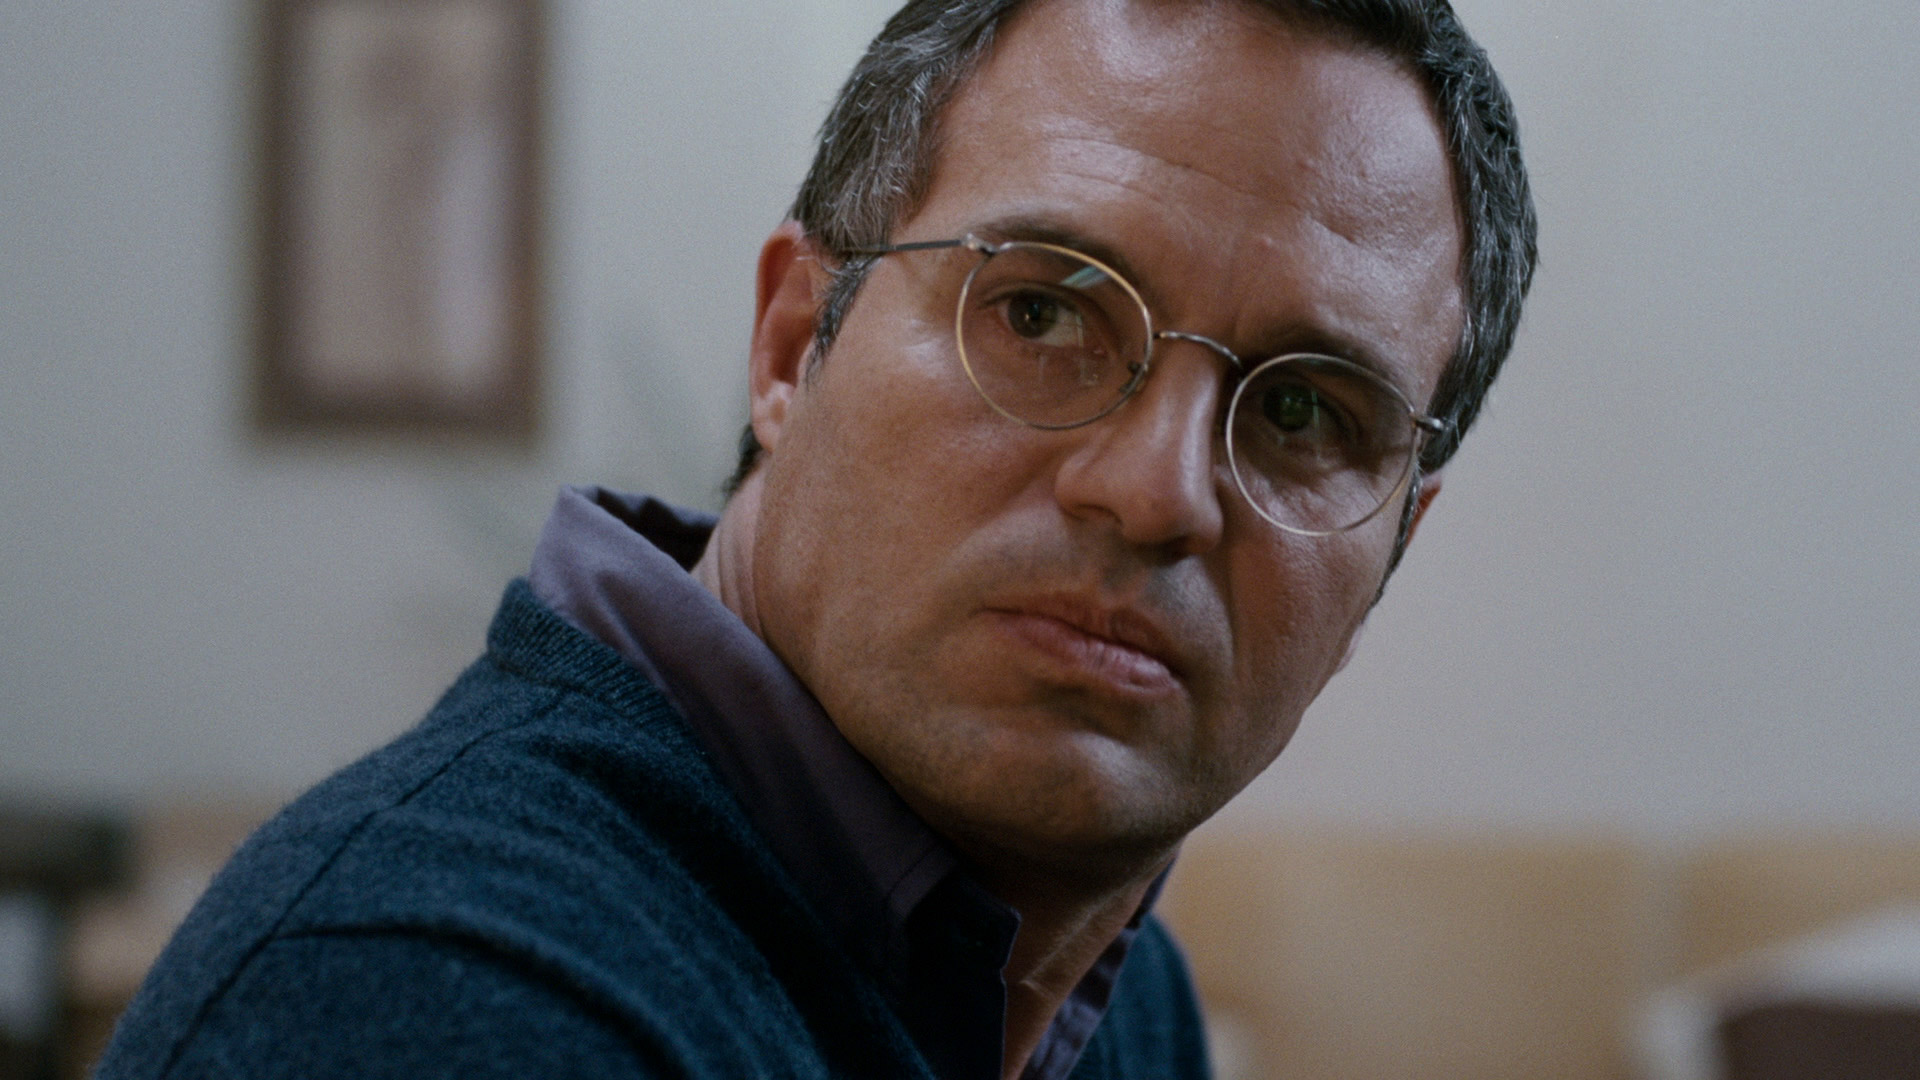 Mark Ruffalo in The Normal Heart